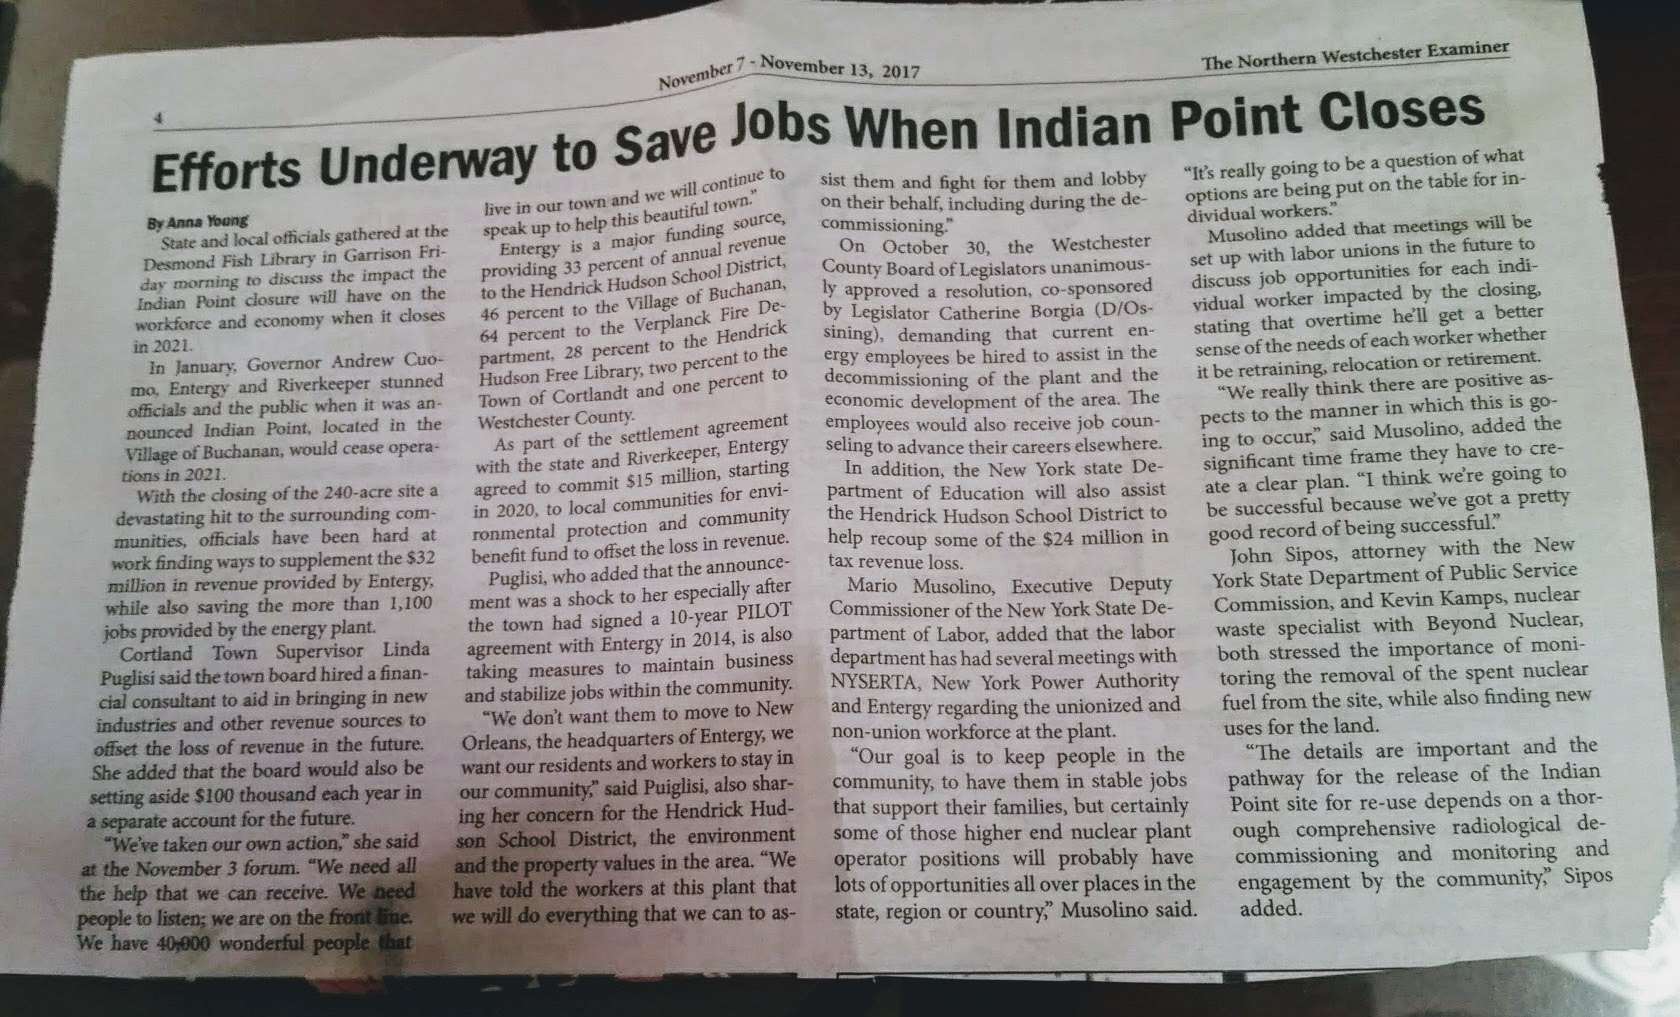 """Examiner News"""" Reports on Job-Saving Efforts 